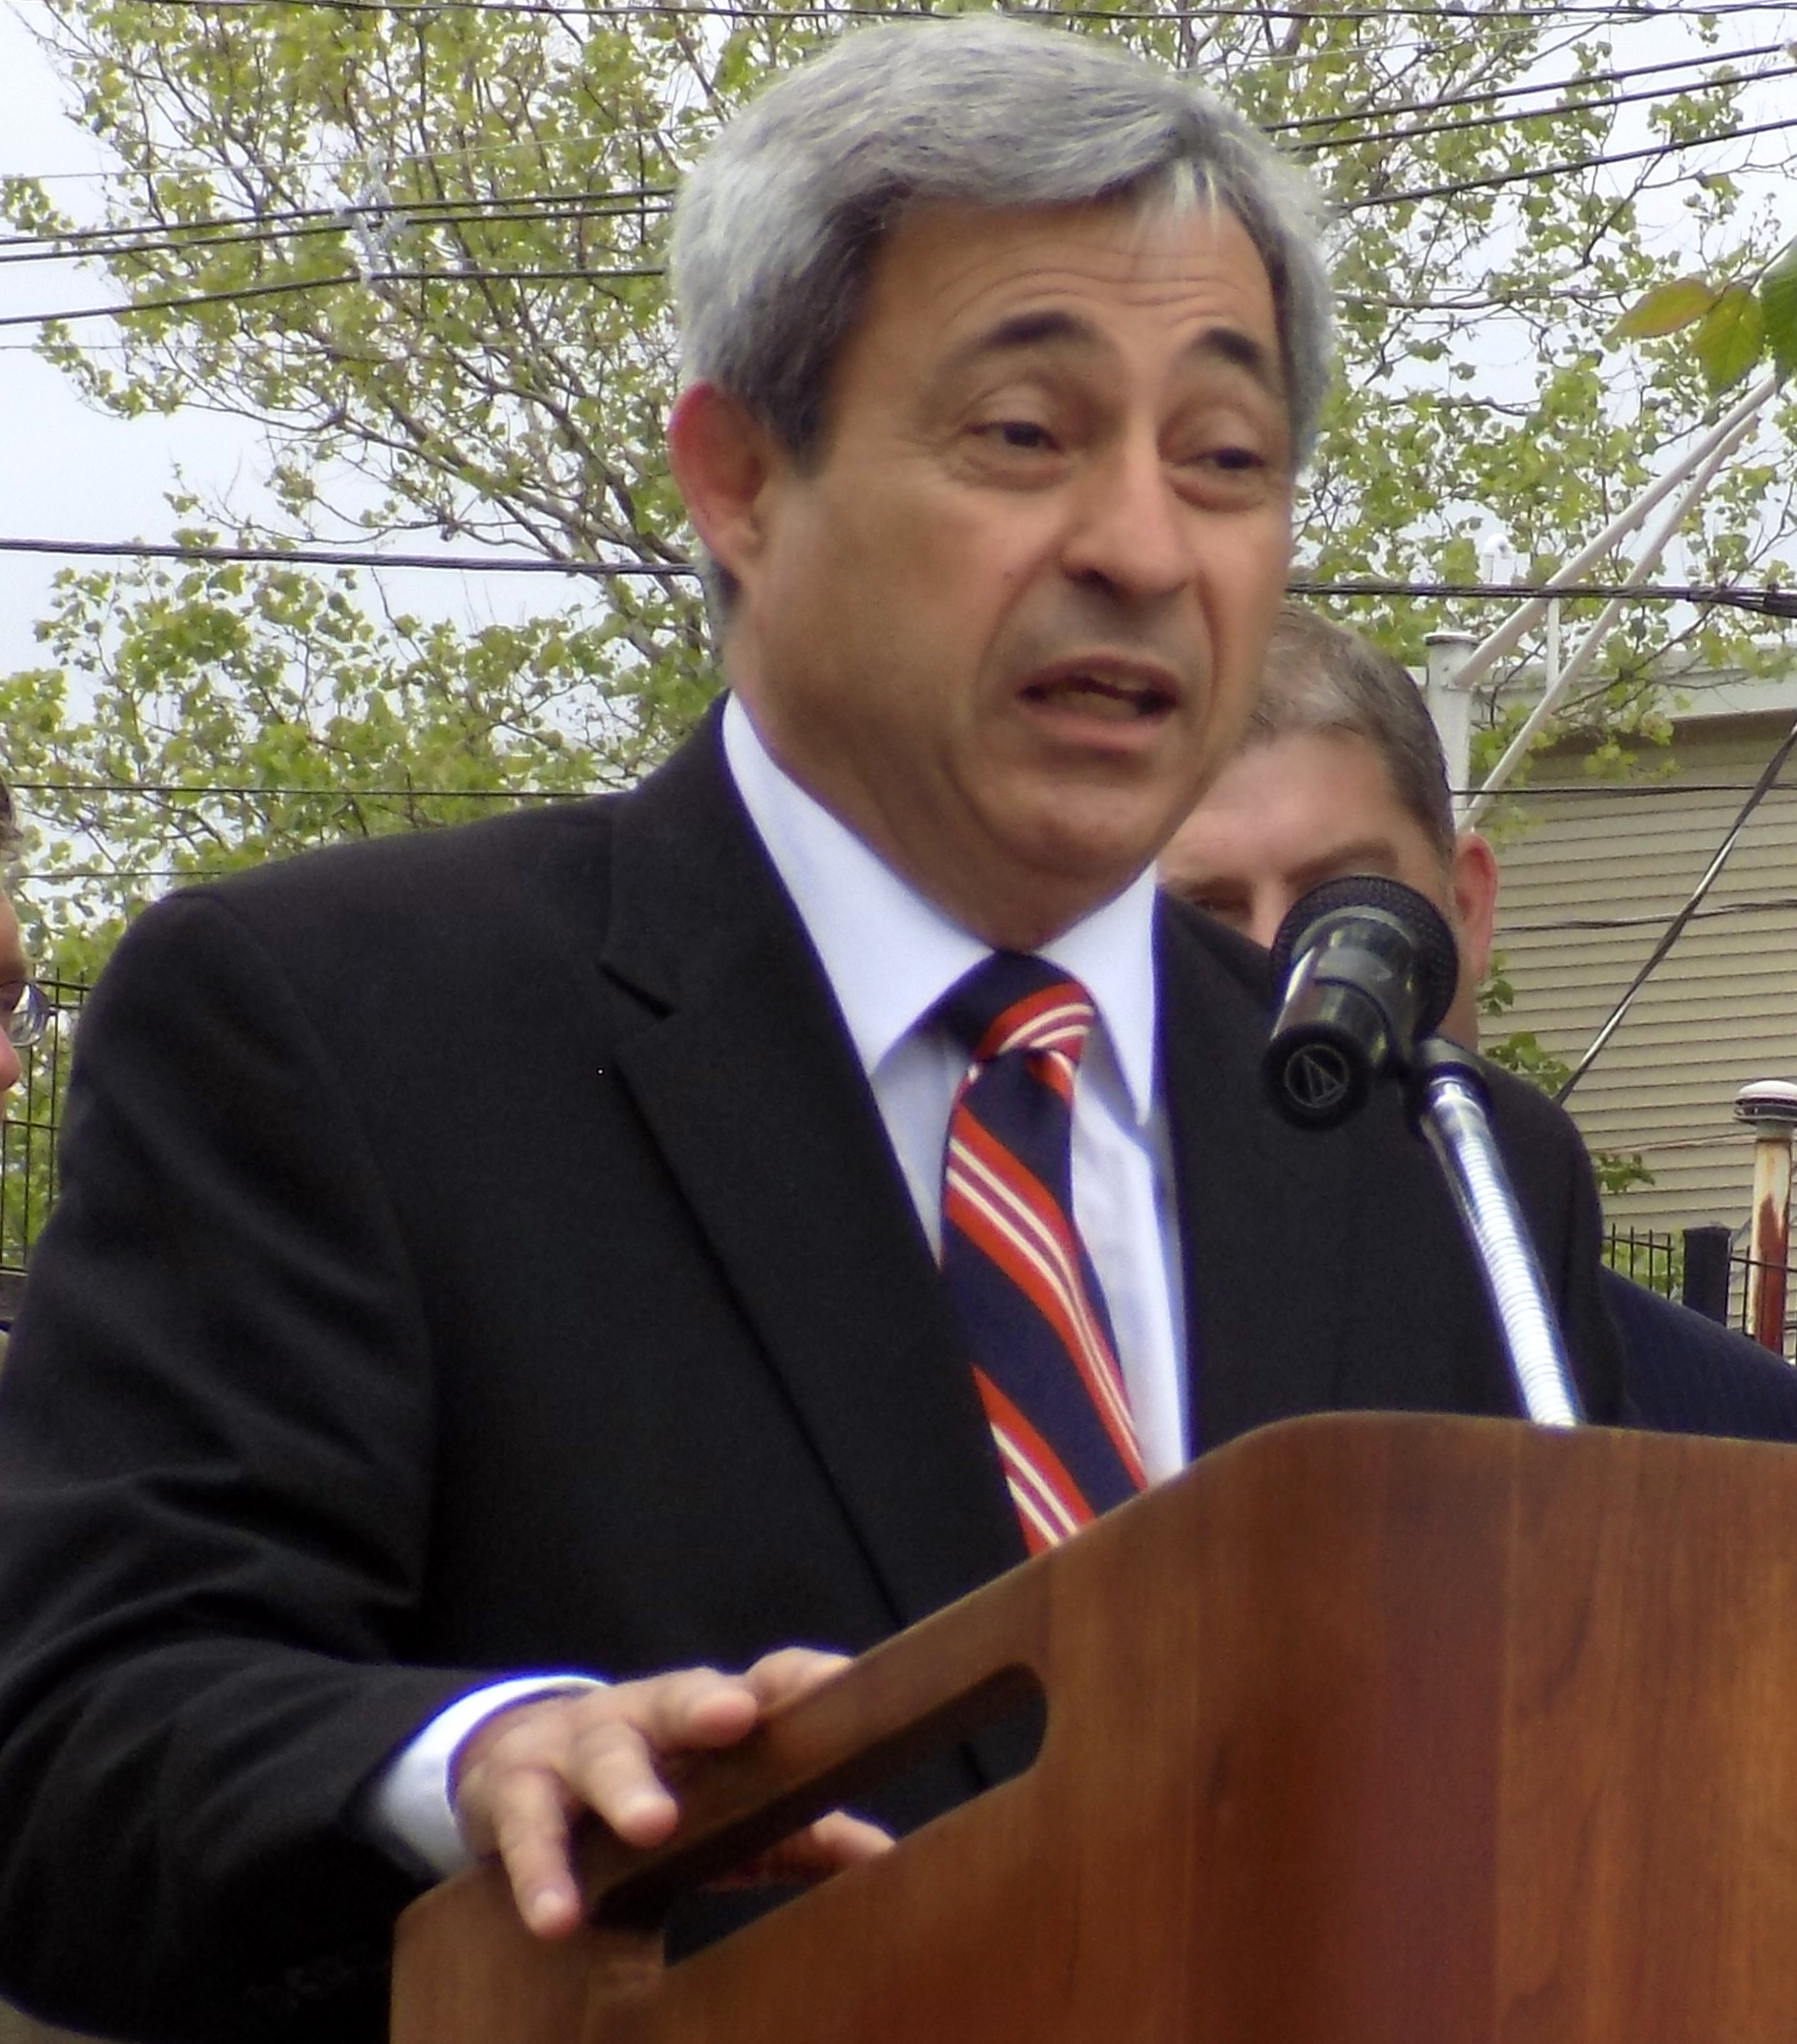 State Rep. Theodore Speliotis was on hand to help present two state grants to the city totaling $467,616 for Municipal Vulnerability Preparedness at East End Peabody Veterans Memorial Park on June 1.